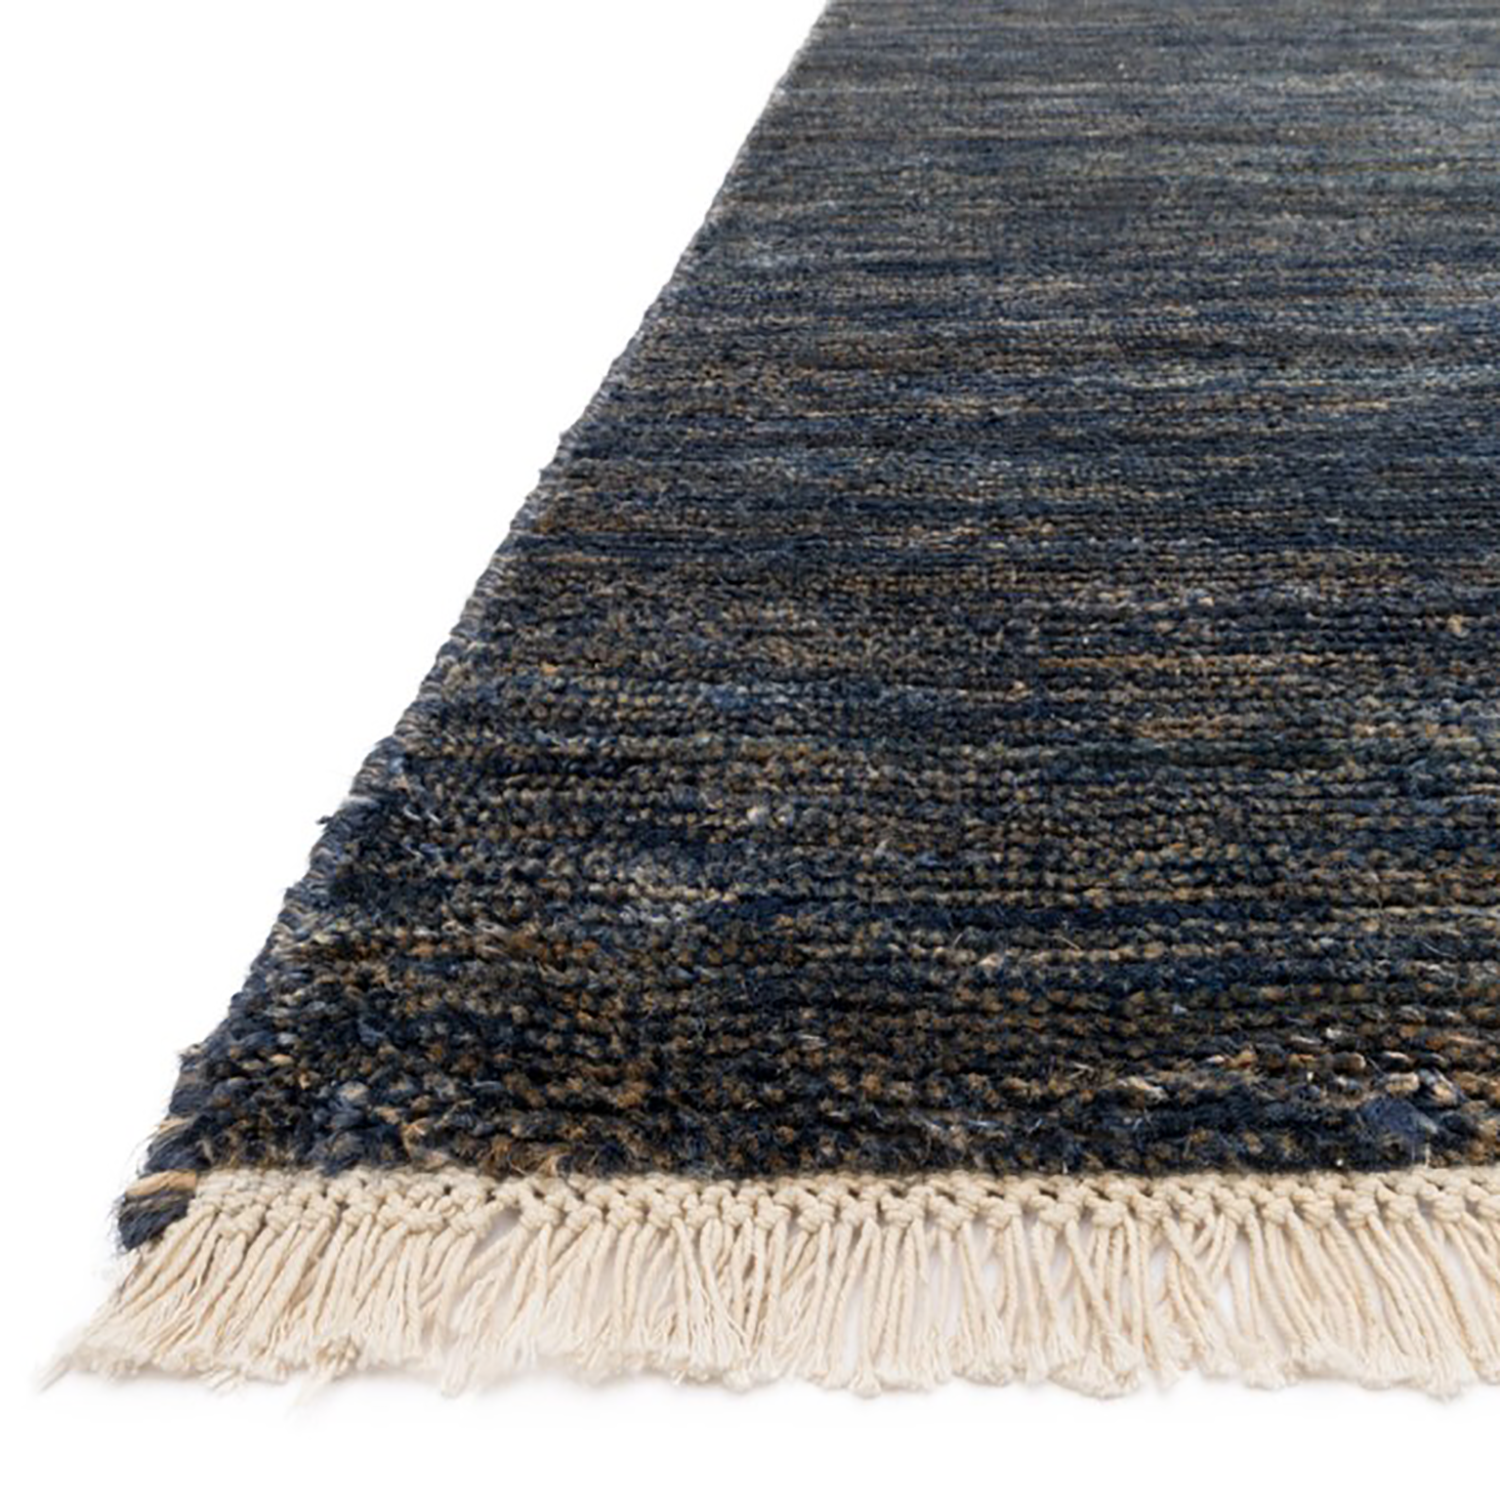 Quinn Hand Knotted Area Rug in Indigo by Loloi